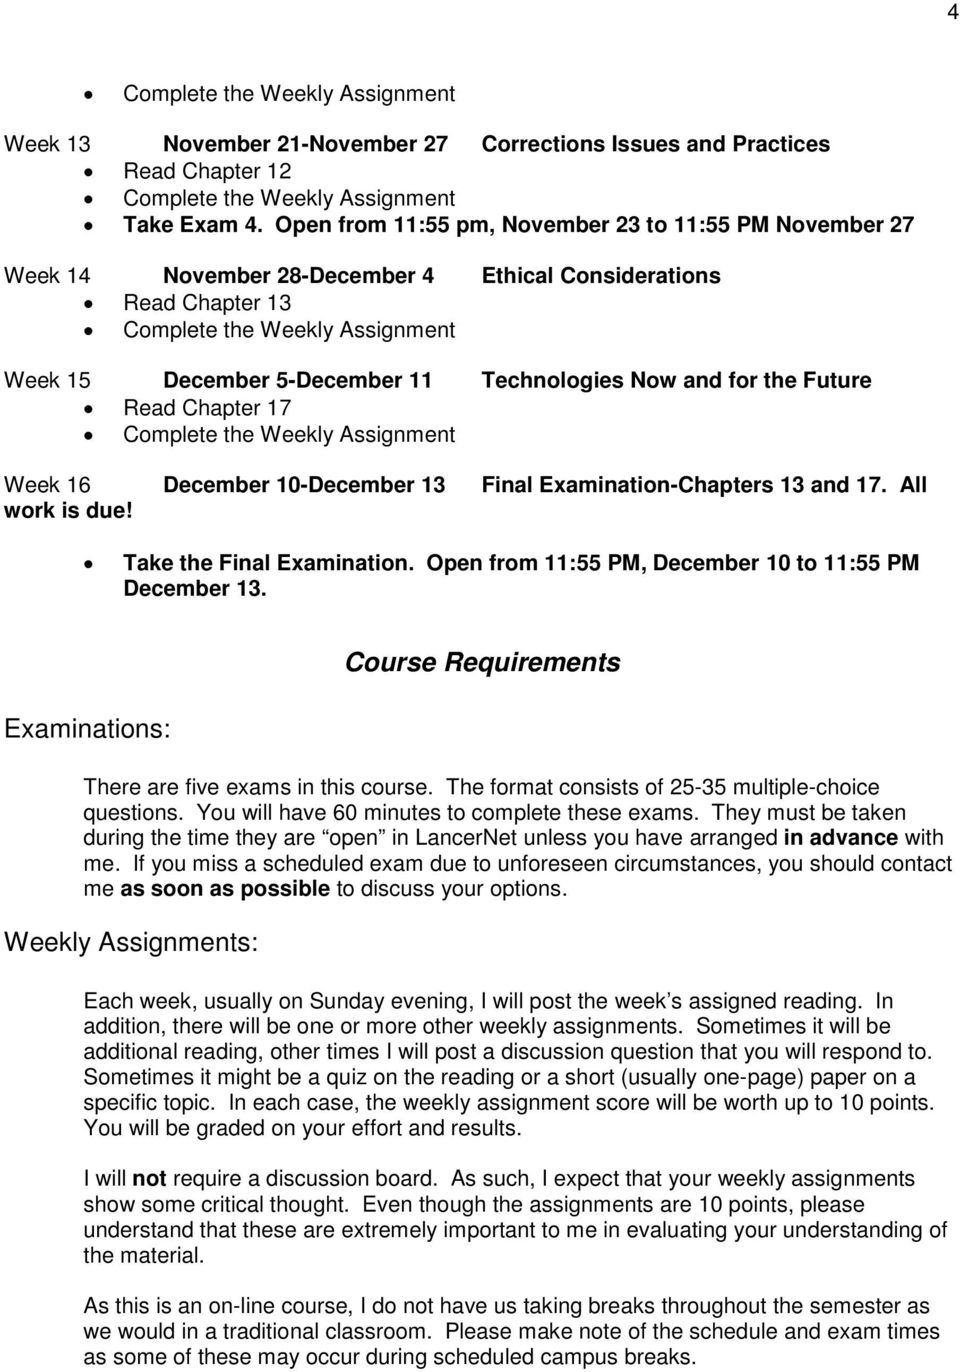 Chapter 17 Week 16 December 10-December 13 Final Examination-Chapters 13 and 17. All work is due! Take the Final Examination. Open from 11:55 PM, December 10 to 11:55 PM December 13.